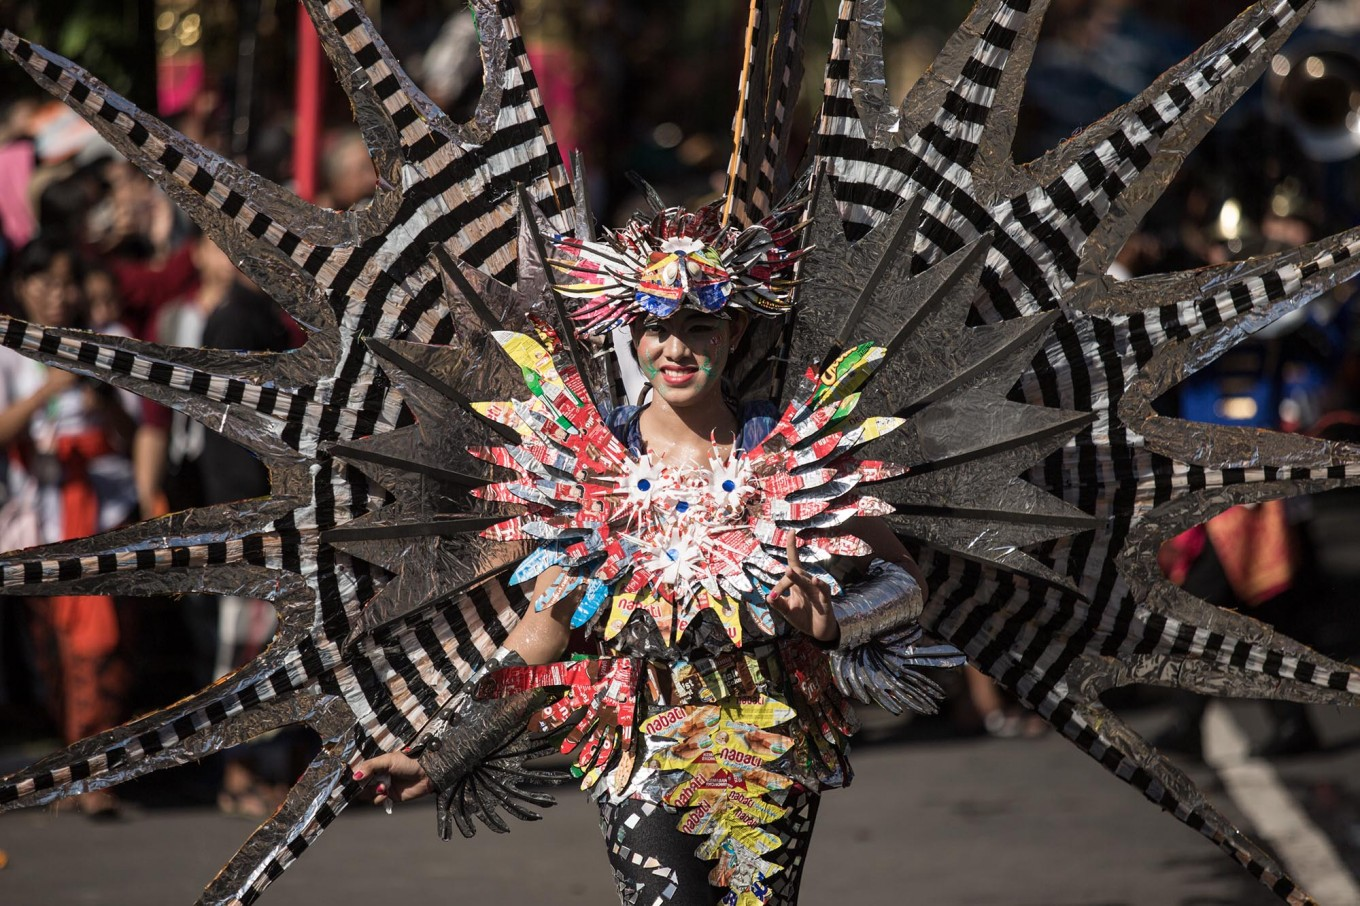 A Balinese woman performs during the opening of the 39th Bali Art Festival at the Bajra Sandhi Monument in Denpasar. JP/Agung Parameswara